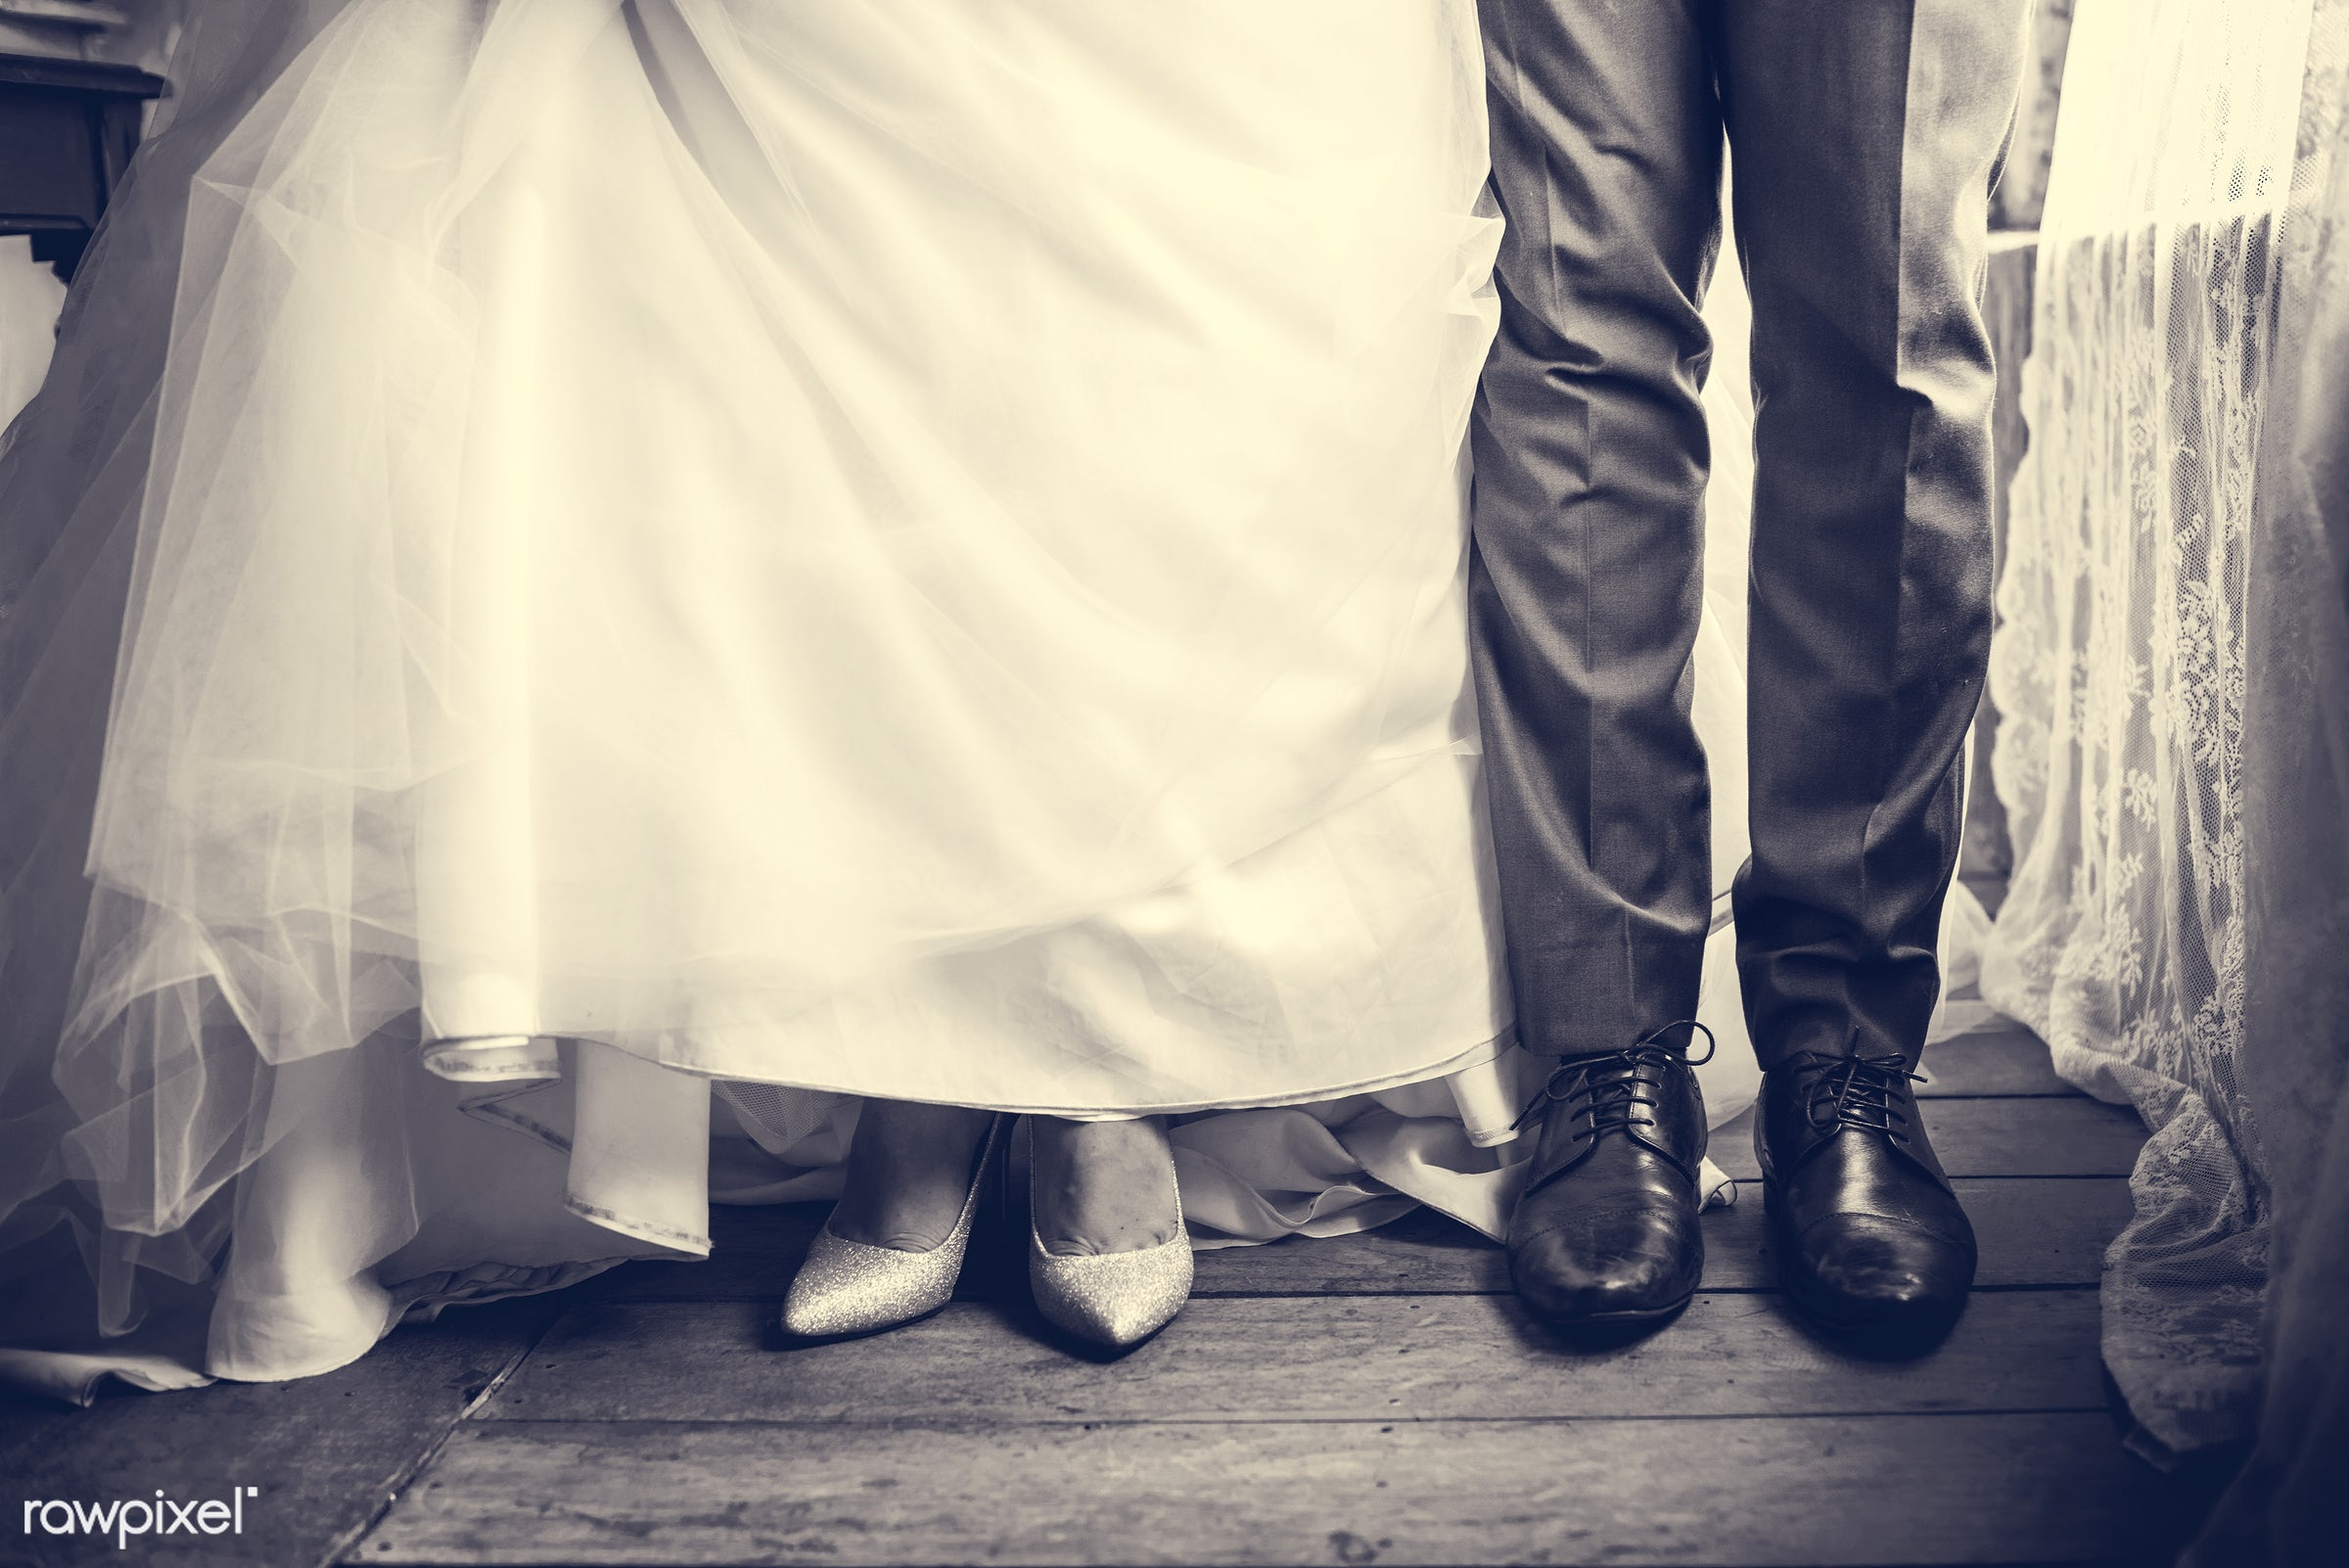 person, bonding, husband, people, love, human leg, style, woman, event, care, couple, soulmate, bride, man, marry, shoes,...